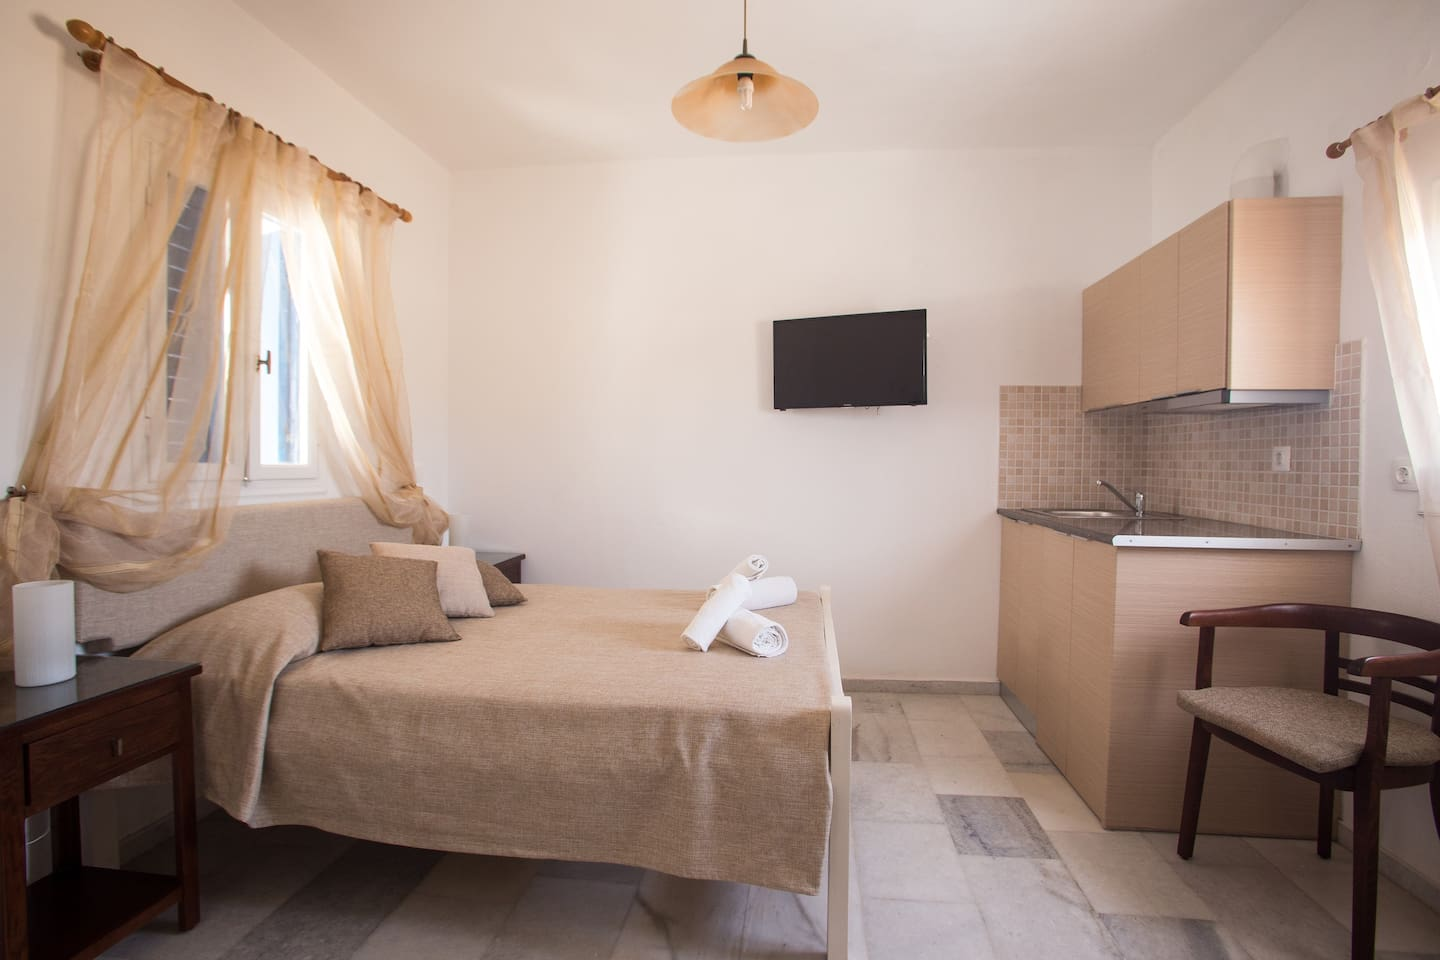 The large beroom offers a double bed with orthosomatic matress and hypoallergic linens. Is airy and sunny with offering natural light and is decorated in earthy tones. We change linens and towels at least every 2 days if earlier, and daily apartment cleaning services.